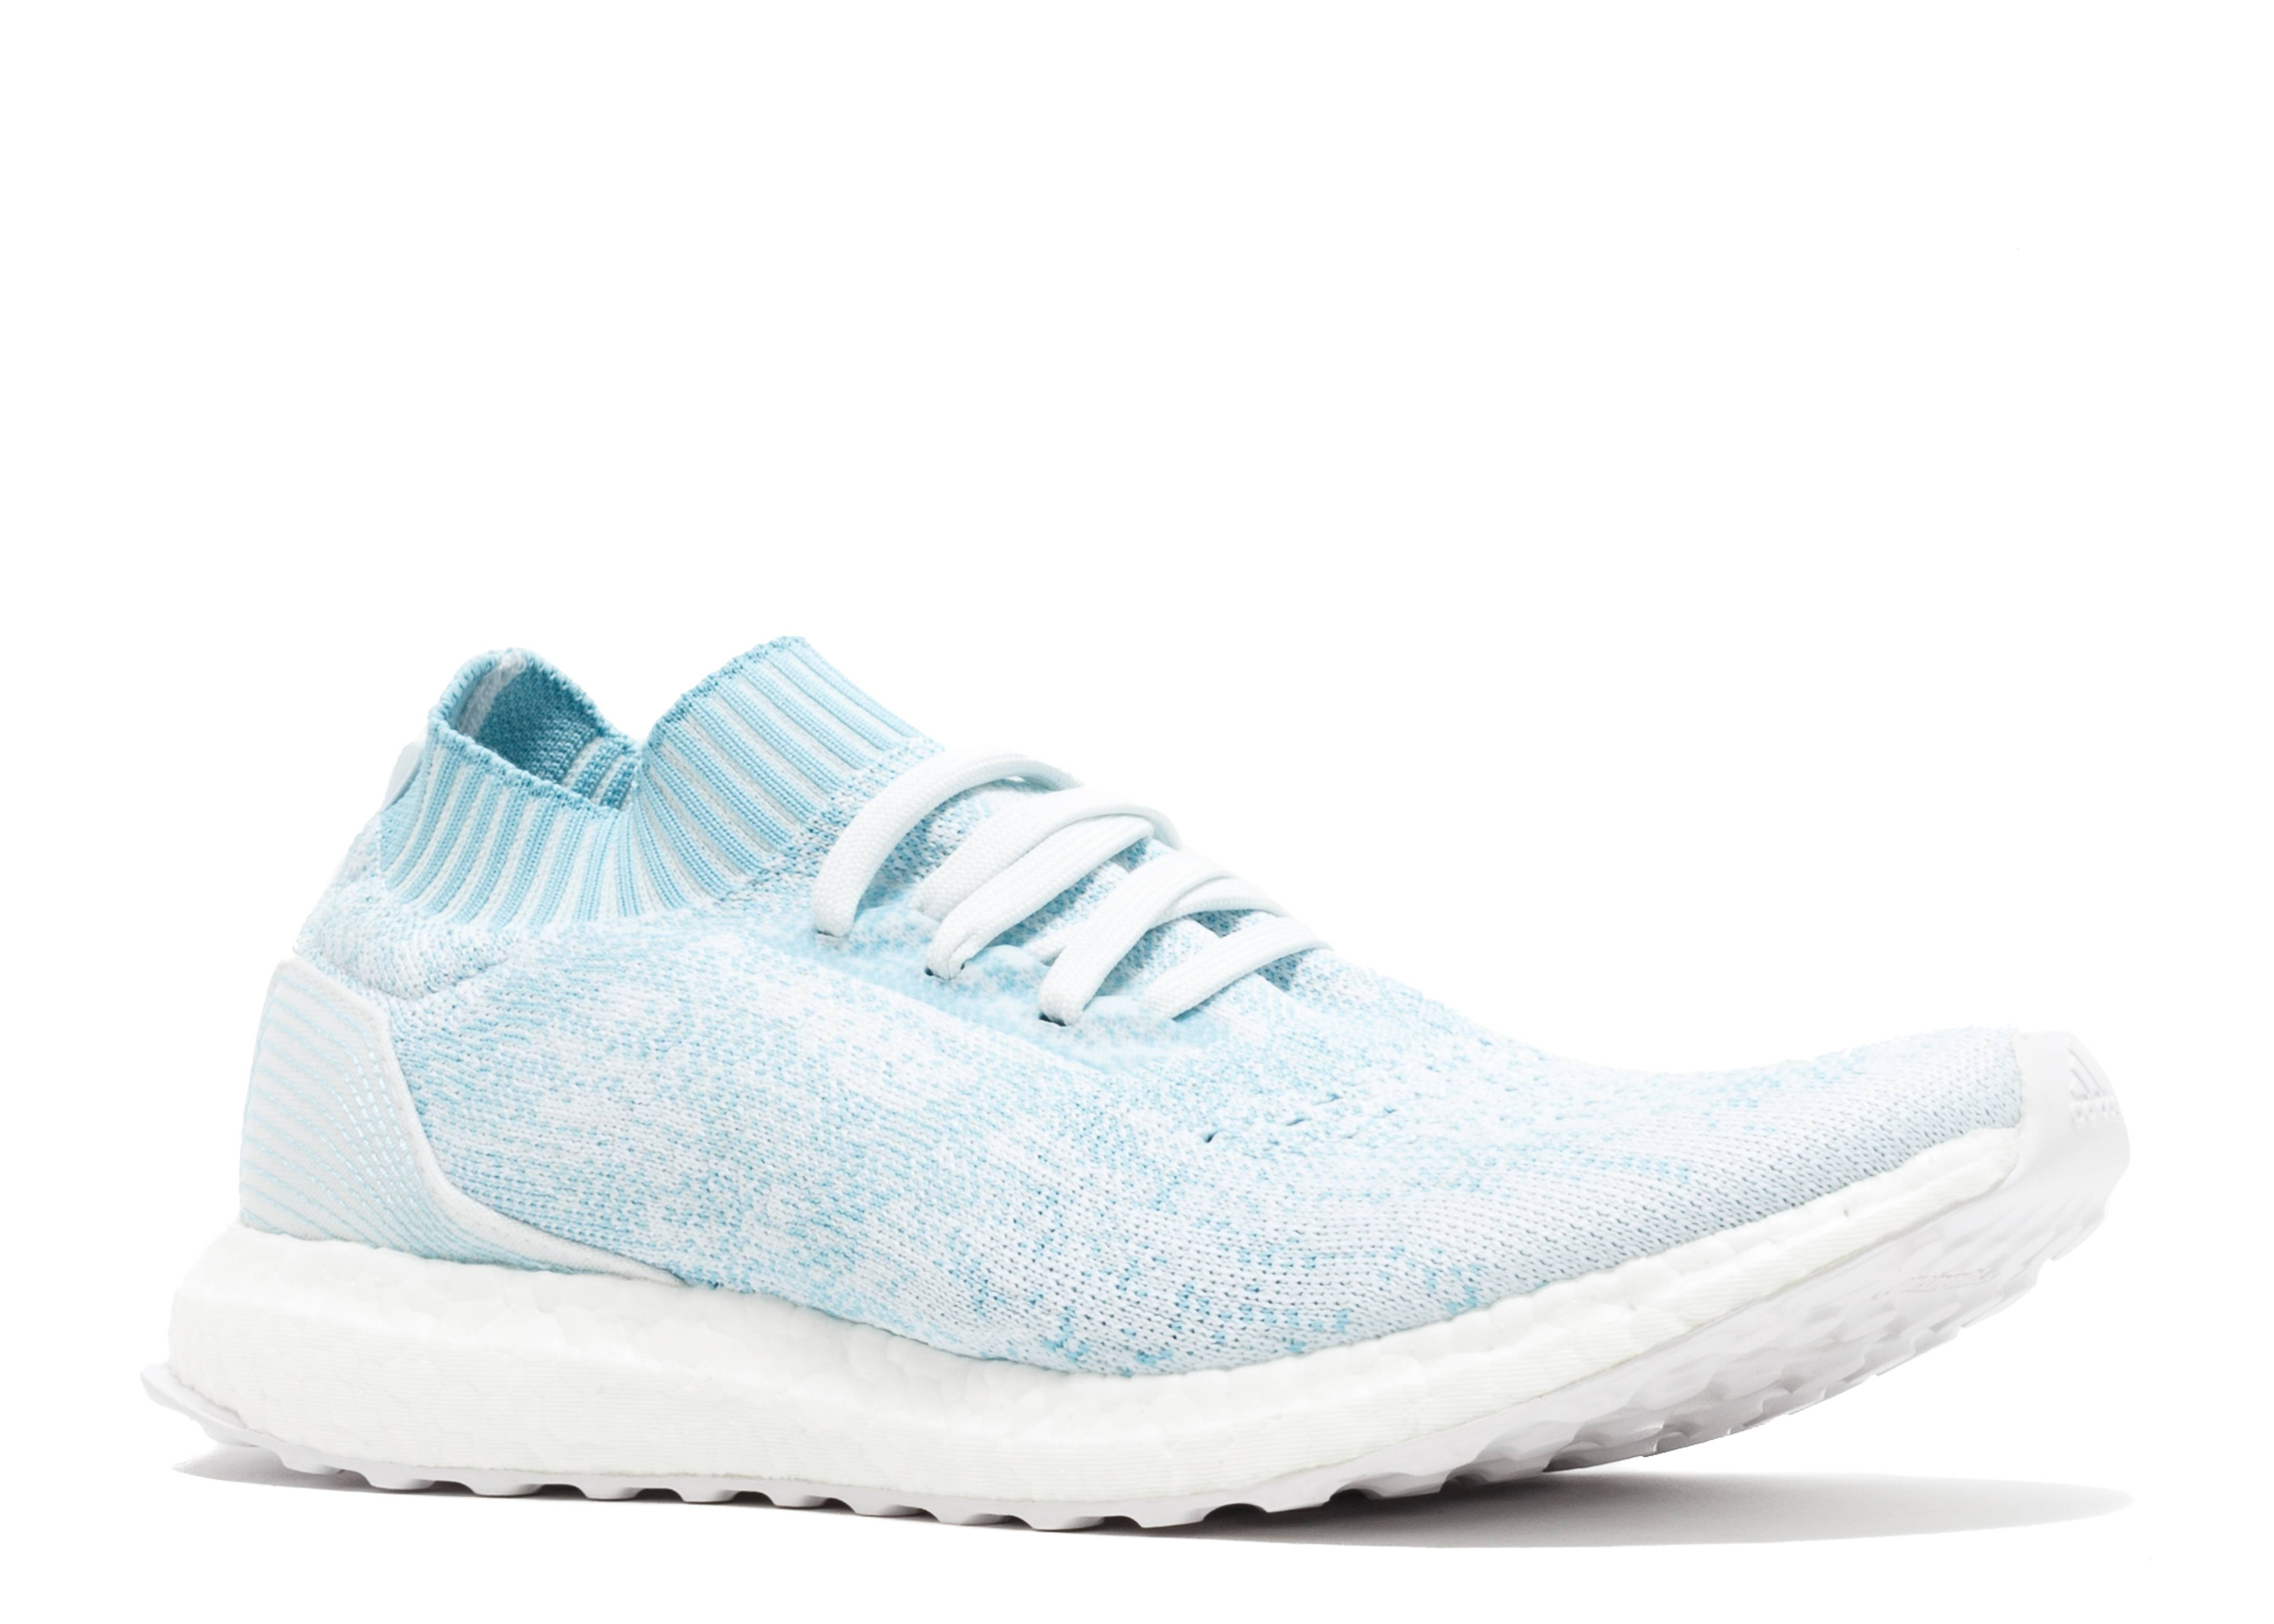 4ec1e0065105f UltraBoost Uncaged Parley